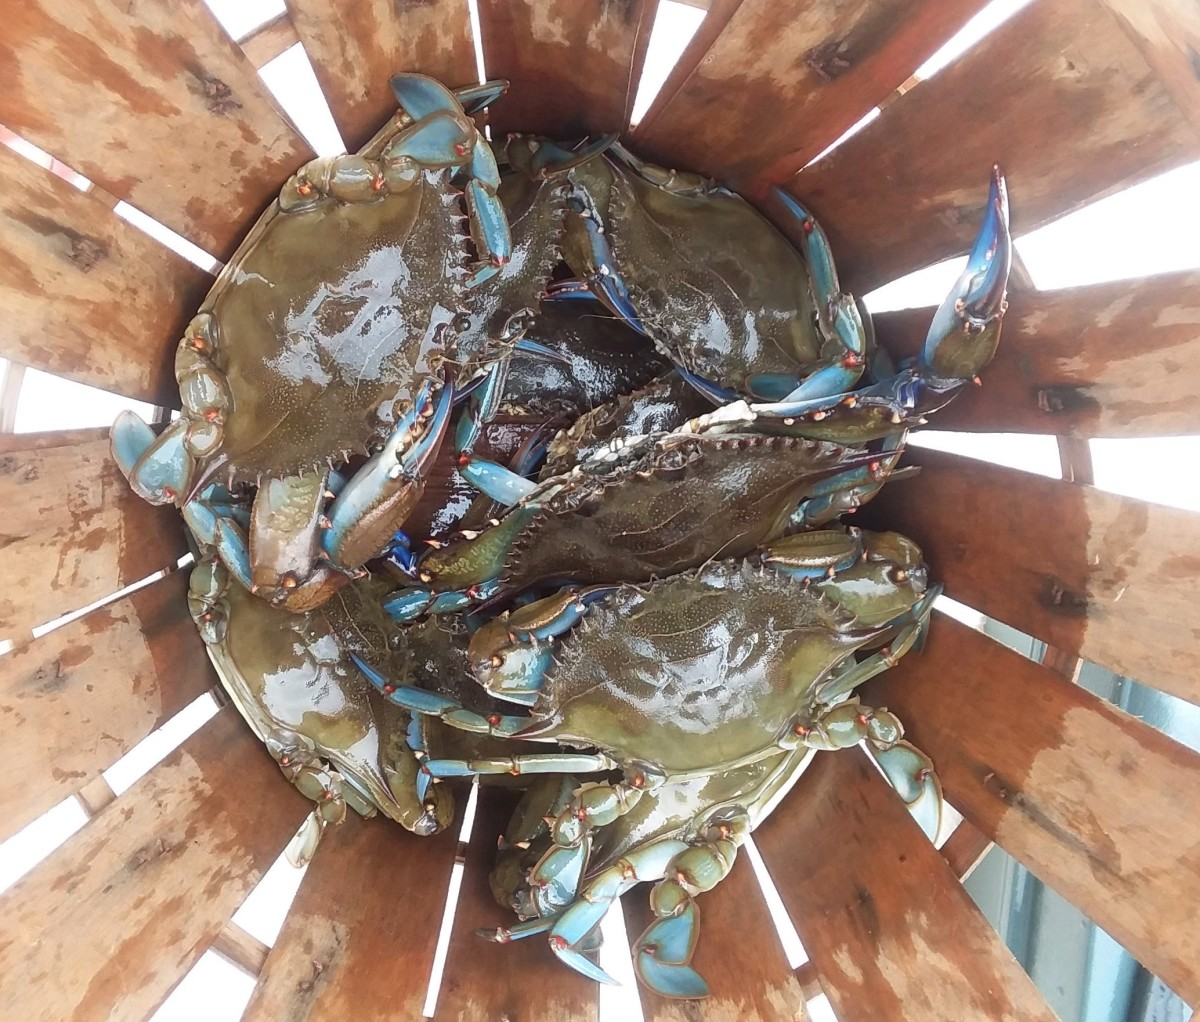 Keeper size Blue Crabs in the basket. We only keep the large male crabs.